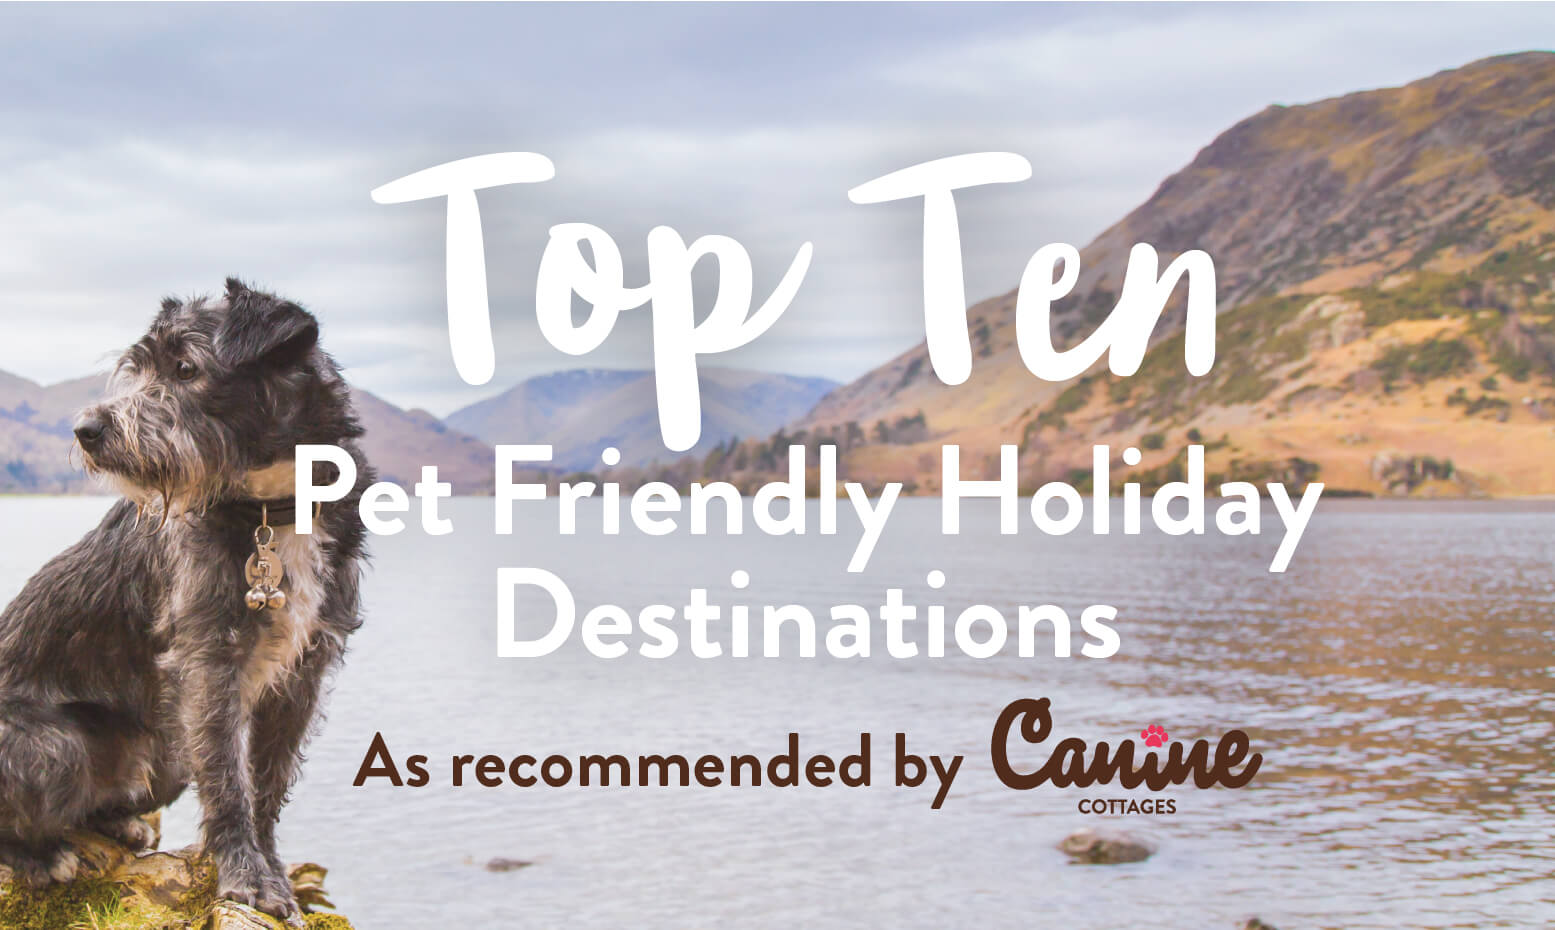 Top 10 Pet Friendly Holiday Destinations